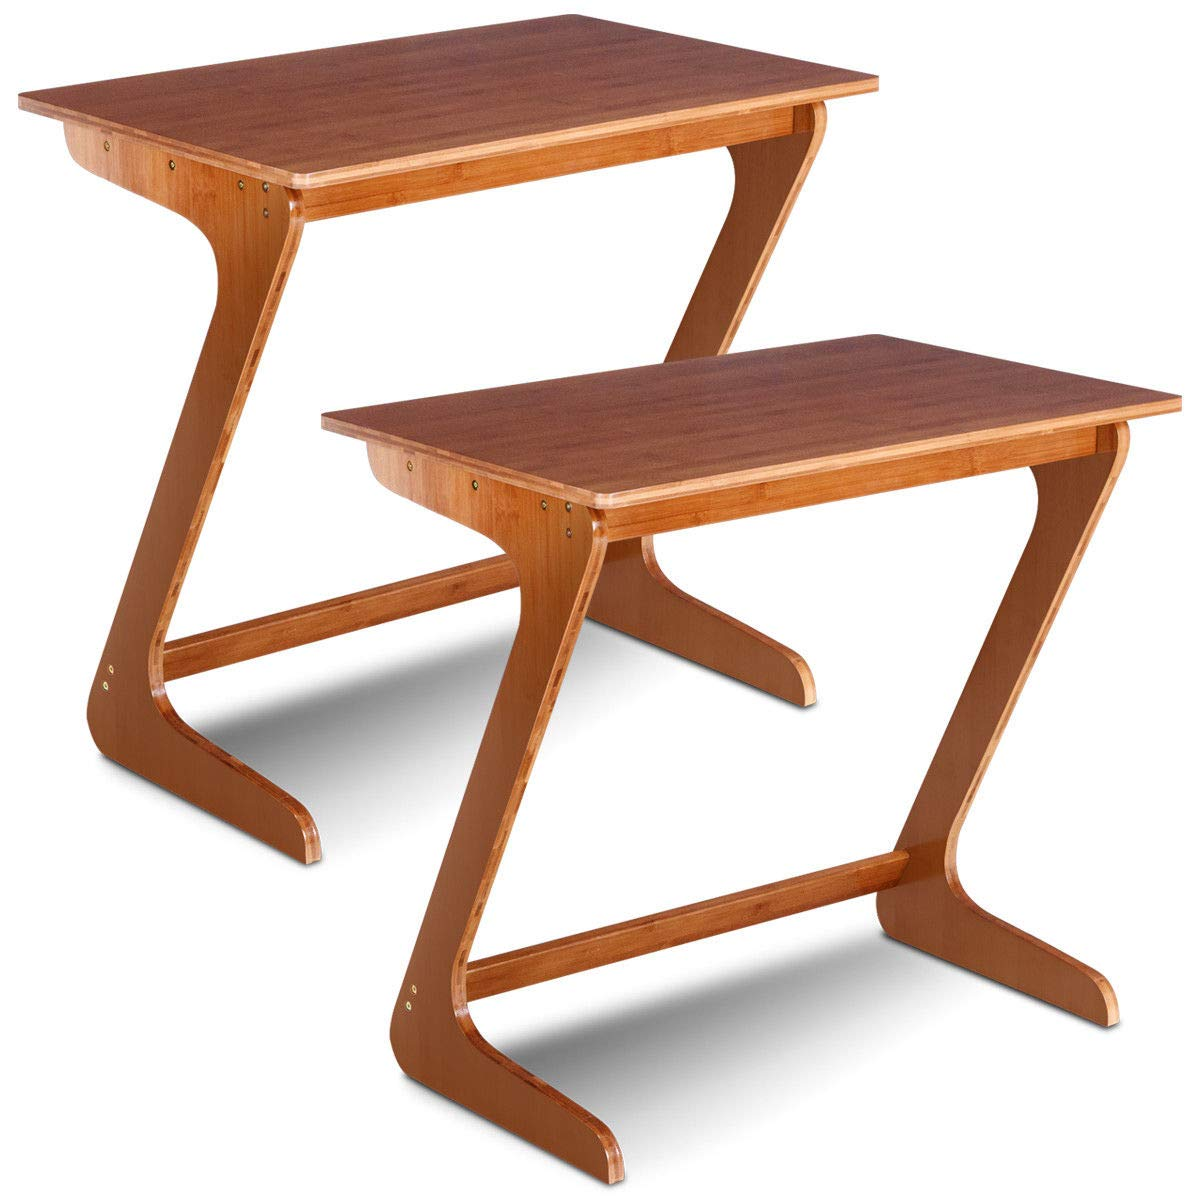 TANGKULA Sofa Table Z Style Portable Home Laptop Writing Wokstation TV Snack End Side Table Laptop Desk Coffee End Table Bed Side Snack Table (Bamboo Natural)